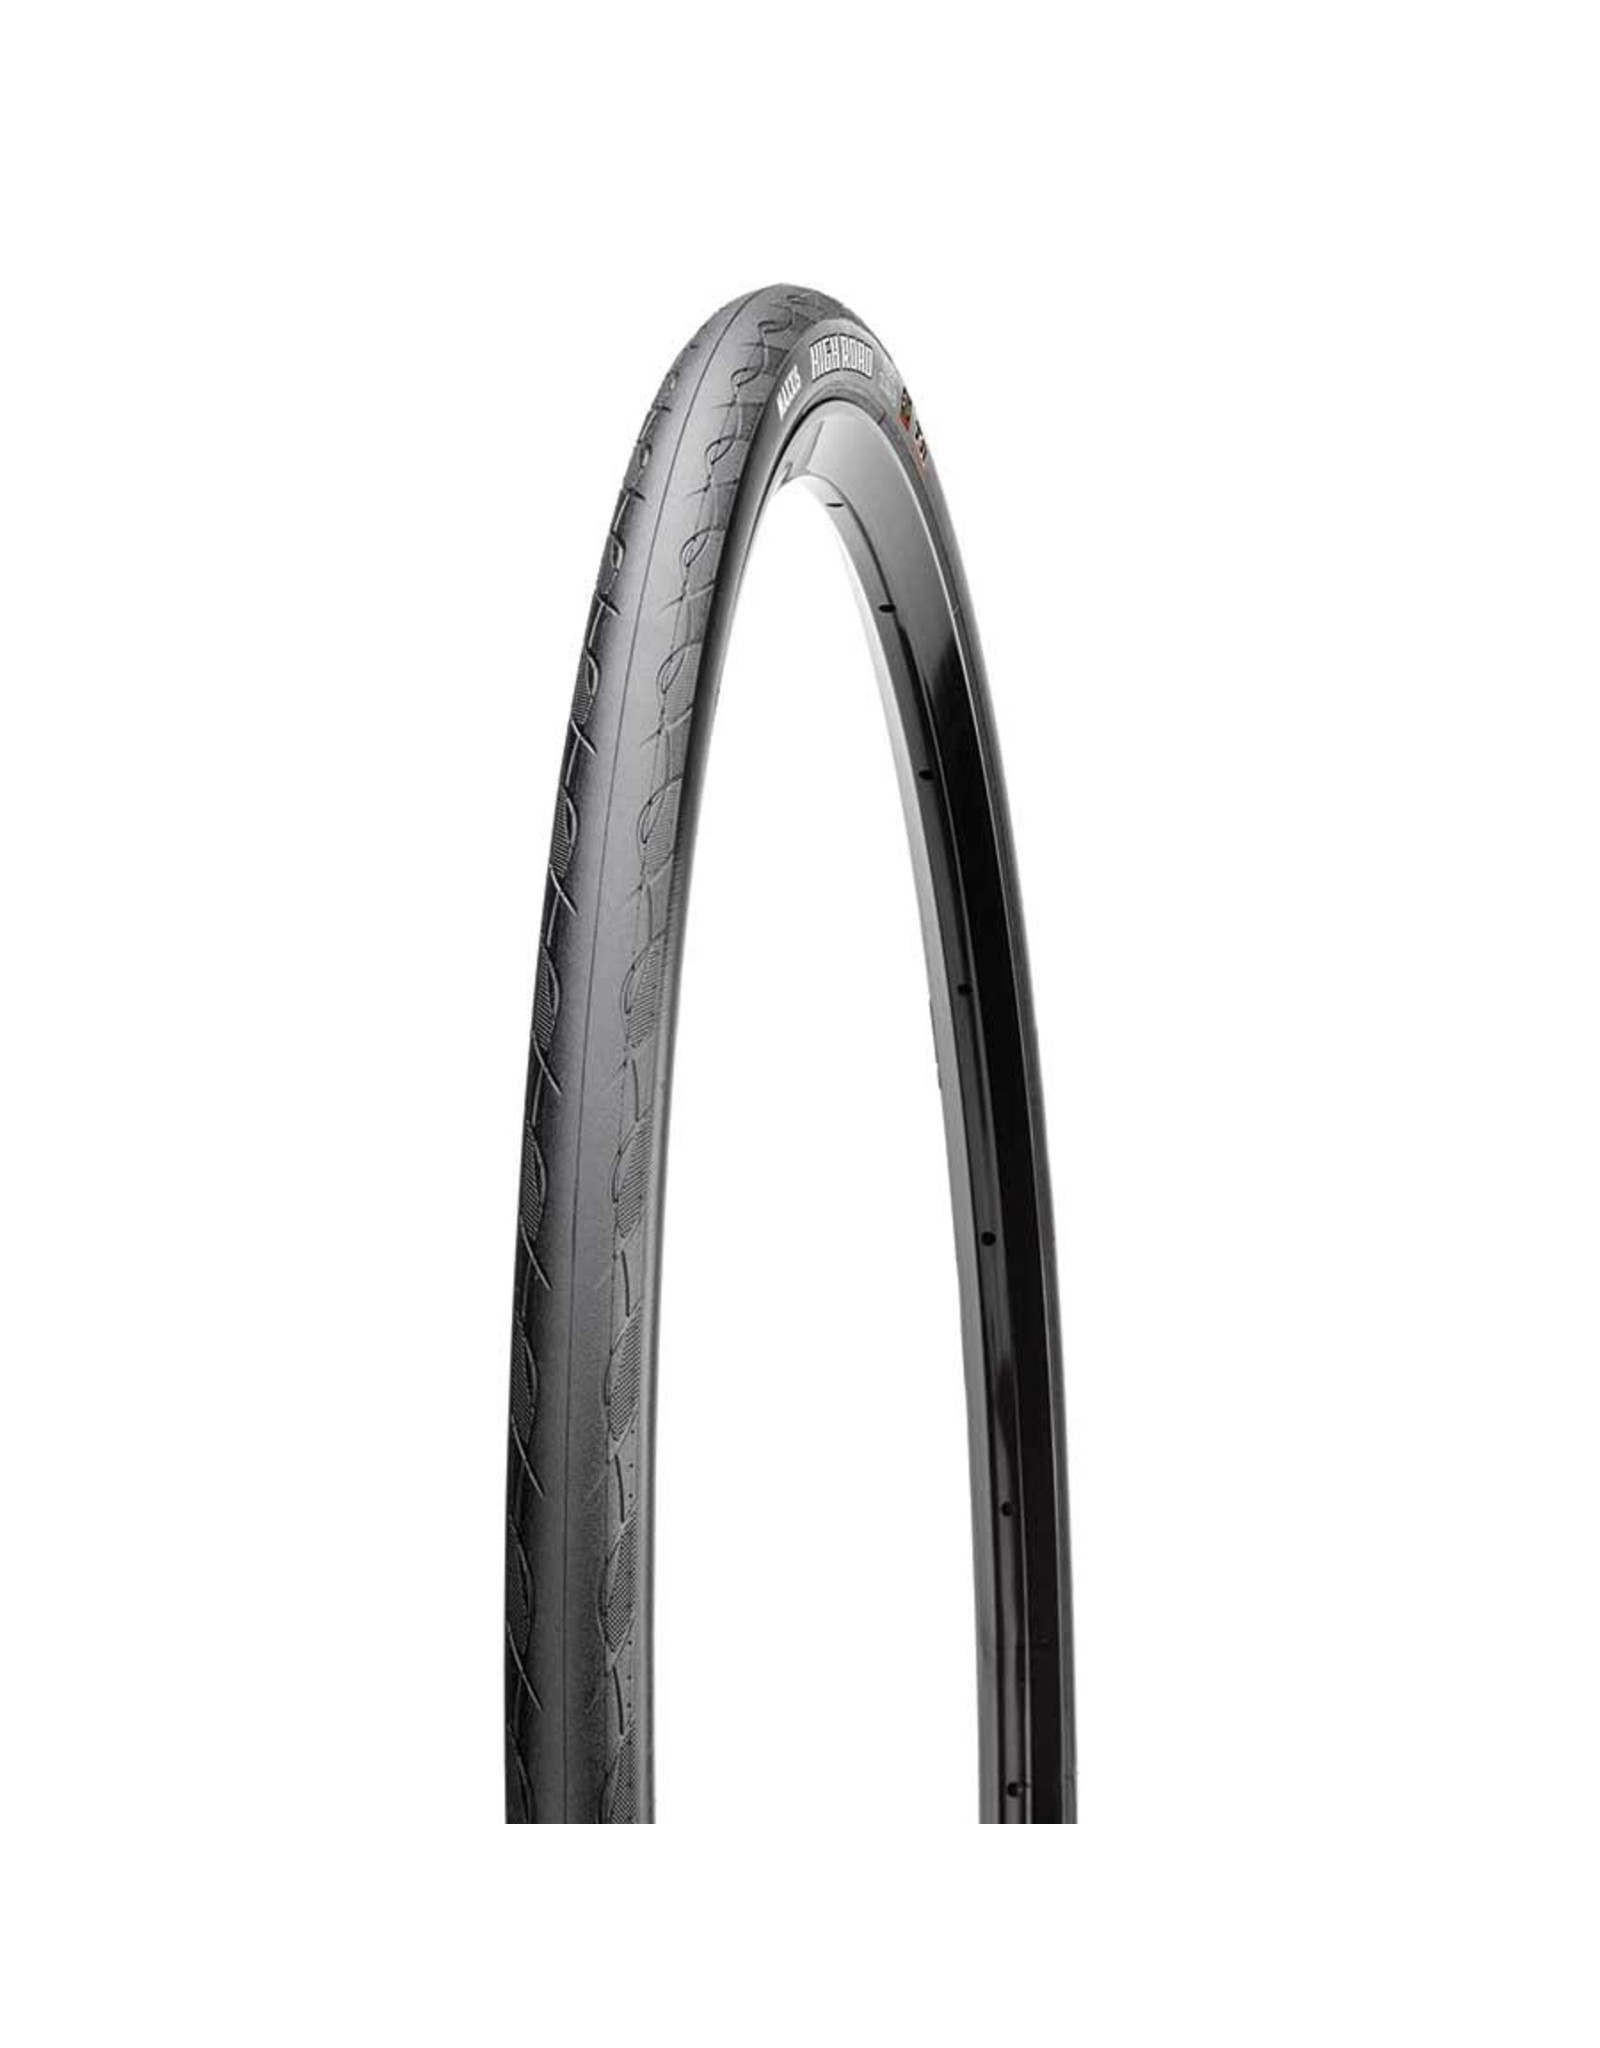 Maxxis Maxxis, High Road, Tire, 700x28C, Folding, Tubeless Ready, Single, 170TPI, Black